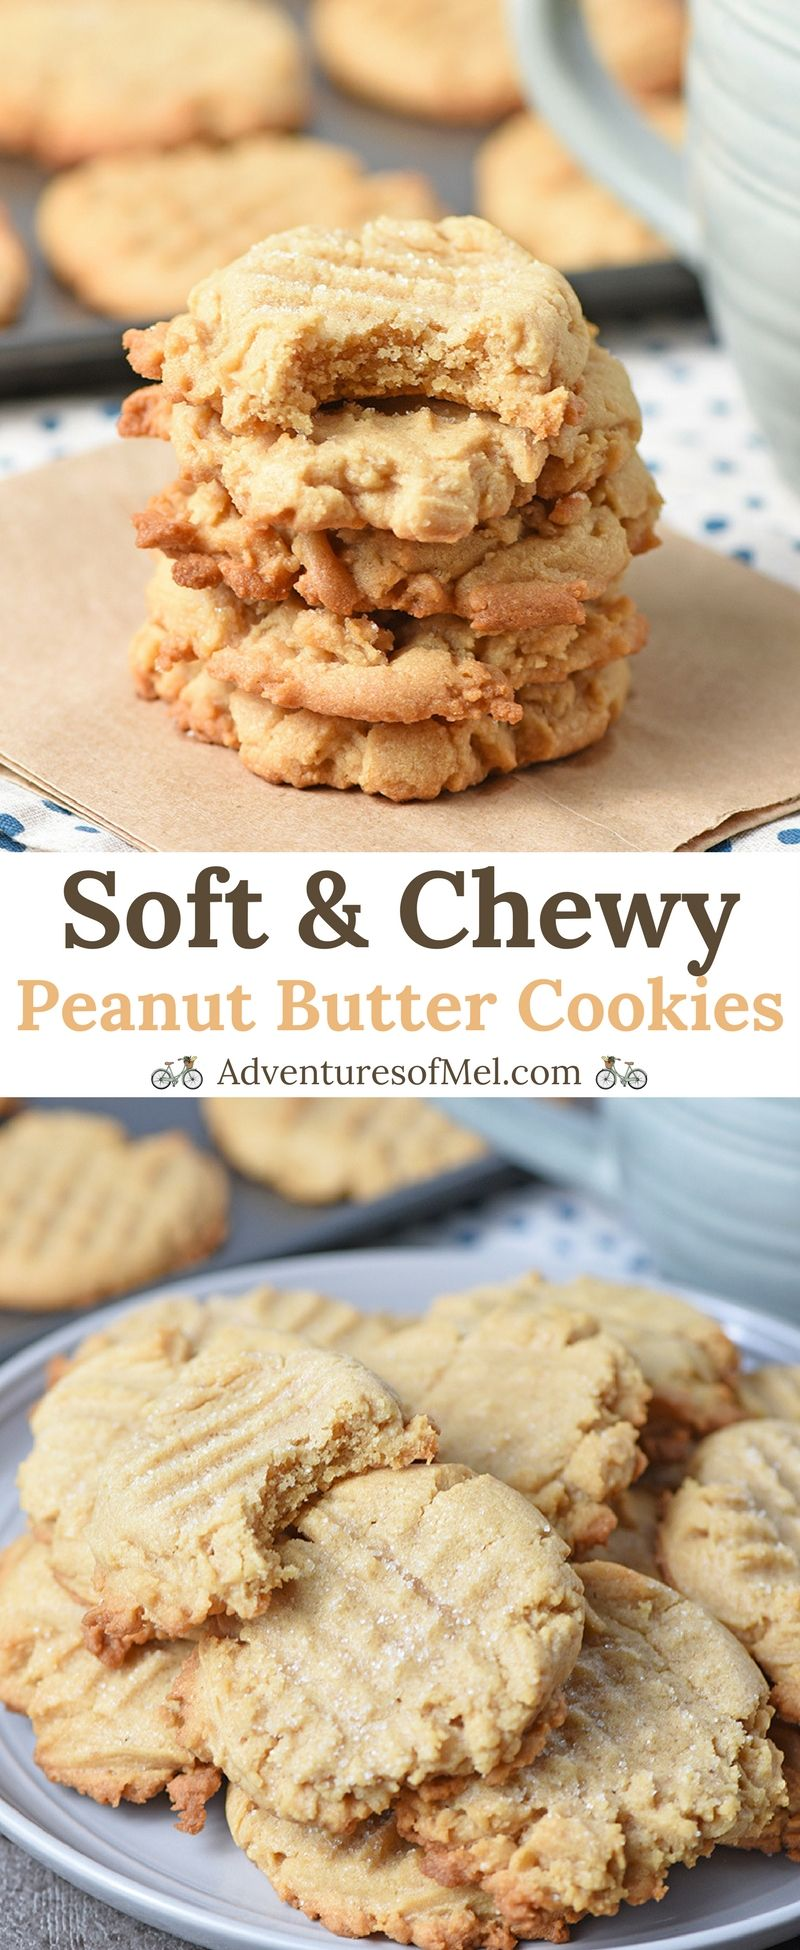 47+ Cake mix peanut butter cookies without eggs ideas in 2021